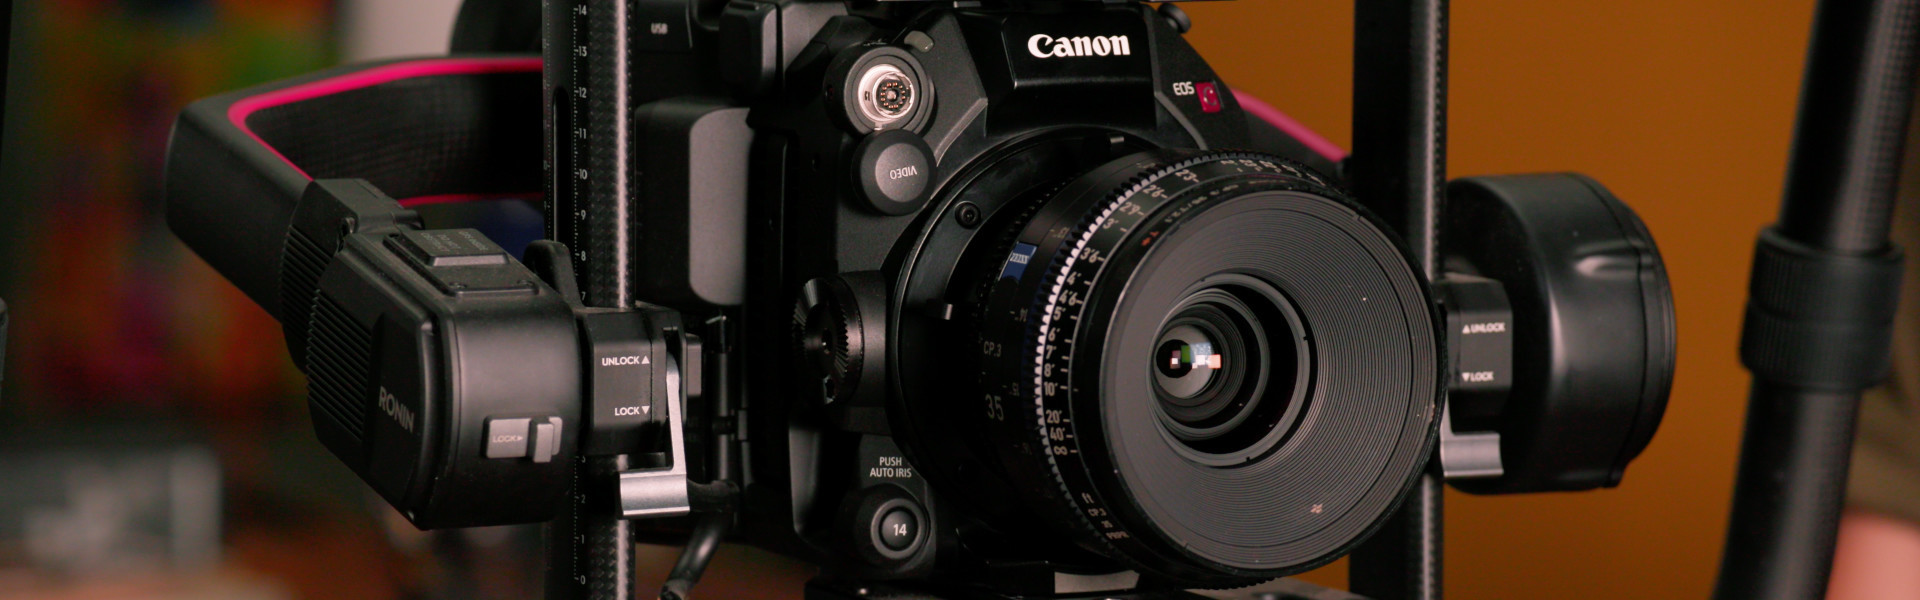 Header image for article At the Bench: Configuring the Canon C500 Mk II Camera